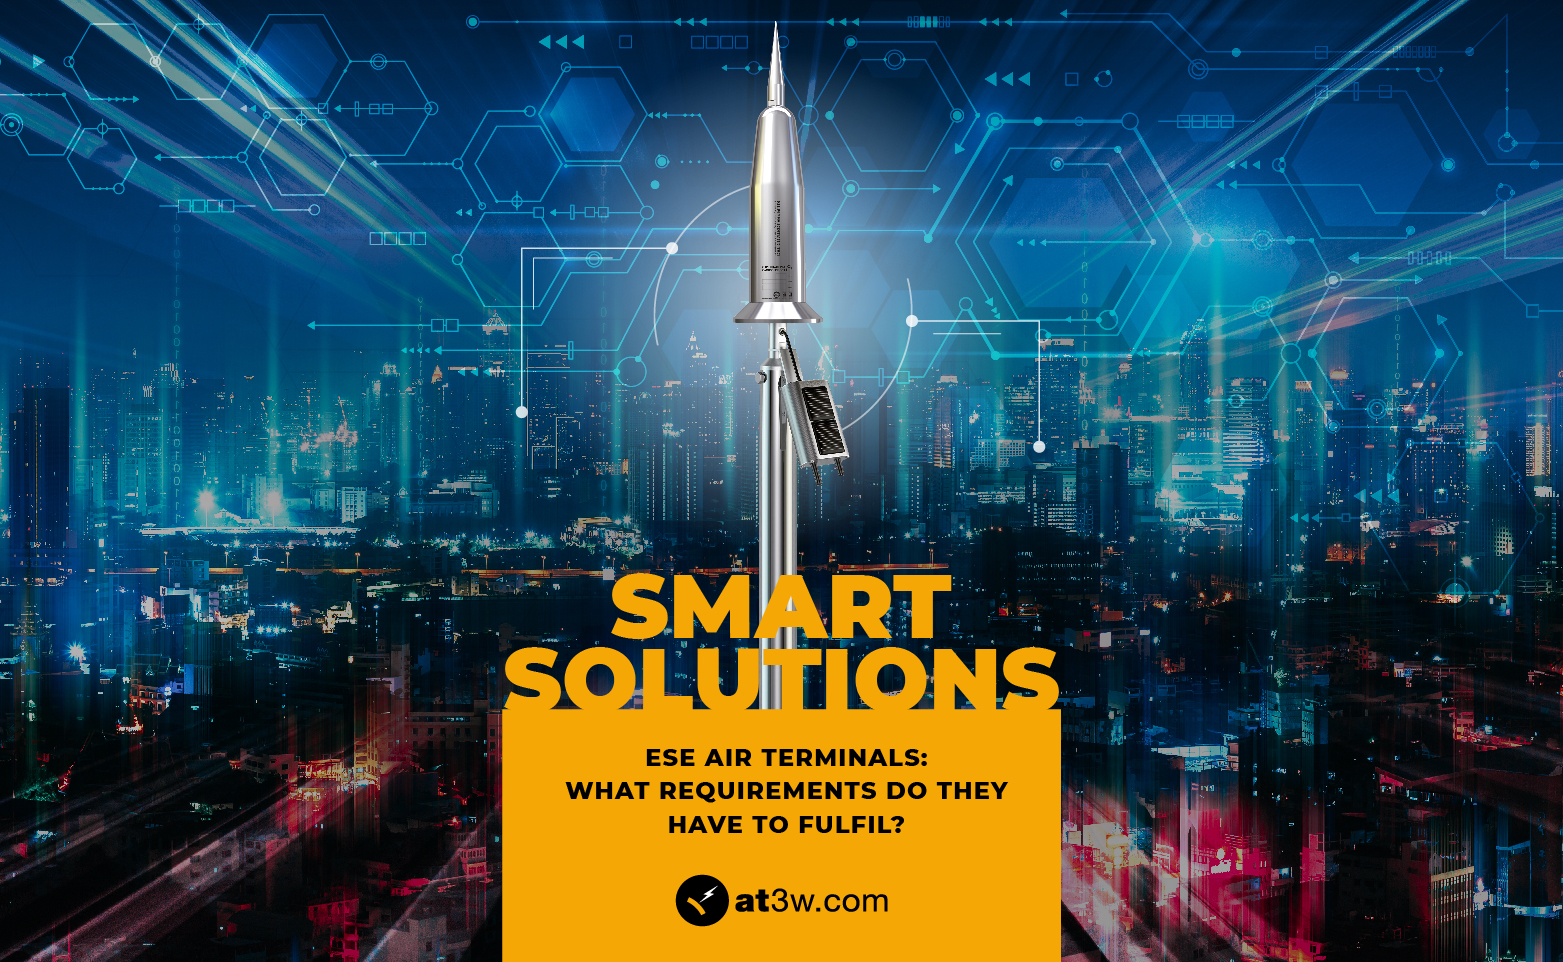 Lightning rods Early Streamer Emission air terminal smart solutions iot